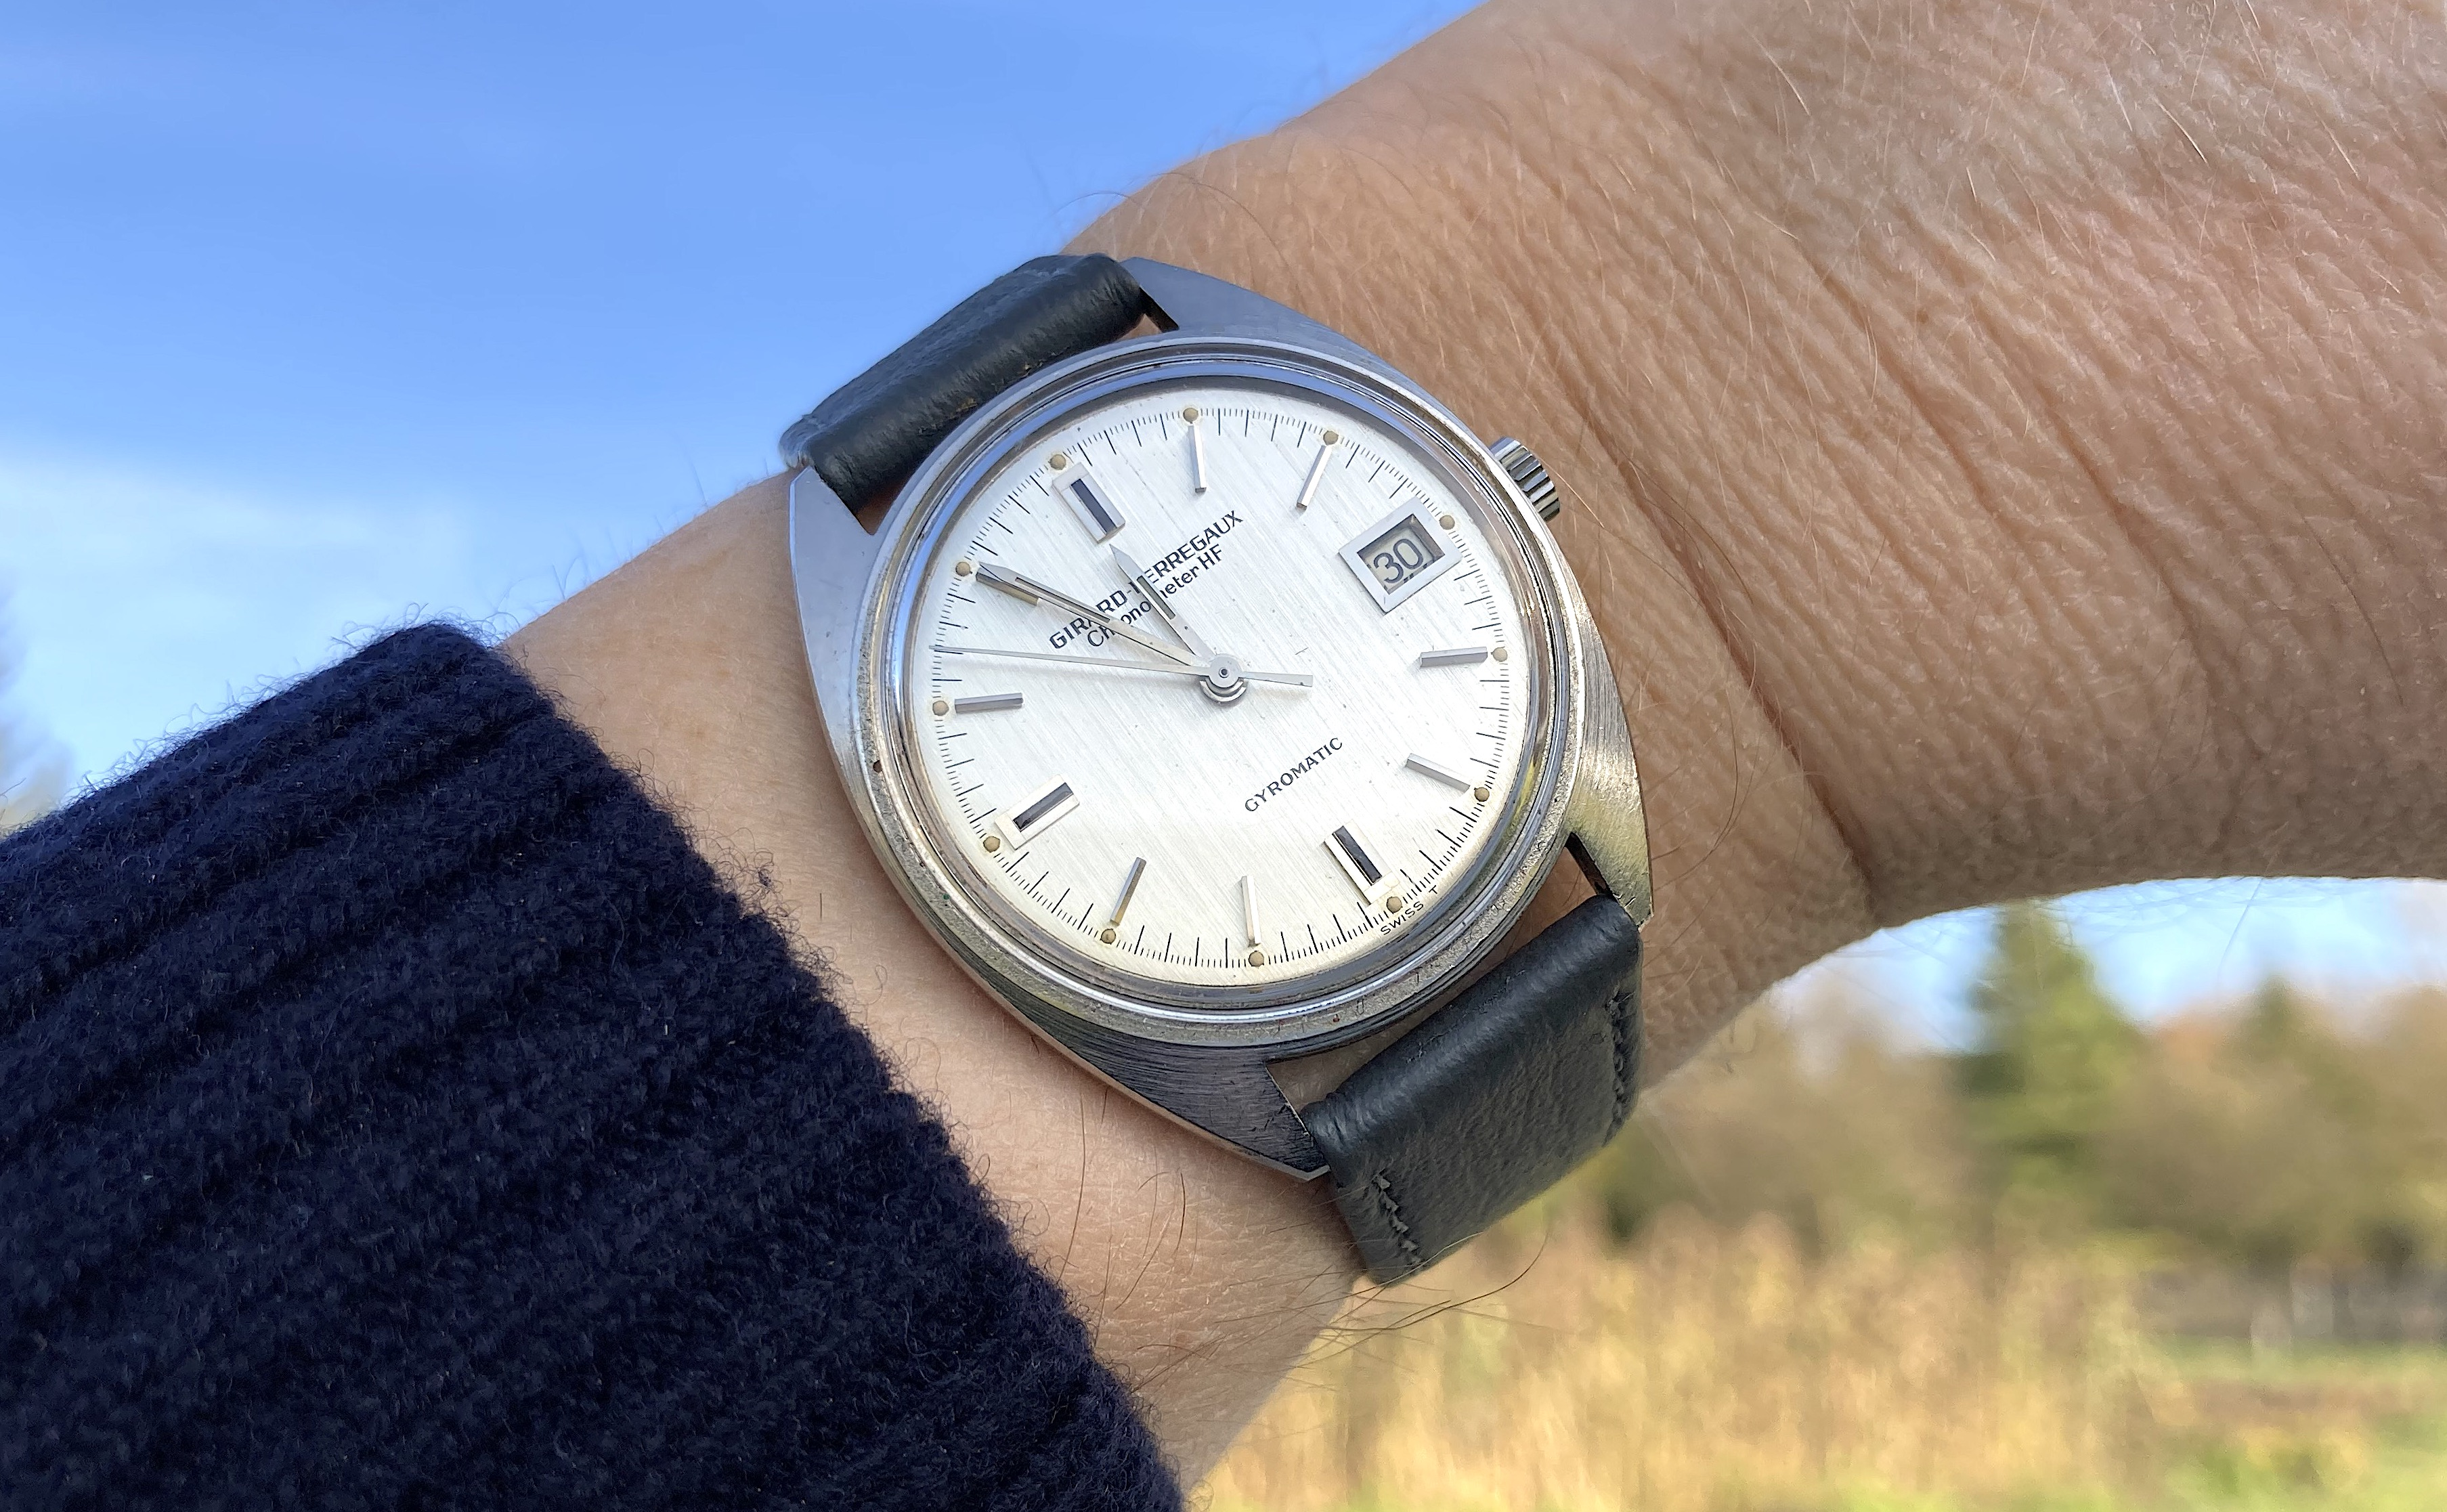 from/my/collection: Girard-Perregaux 8795 X, Chronometer HF